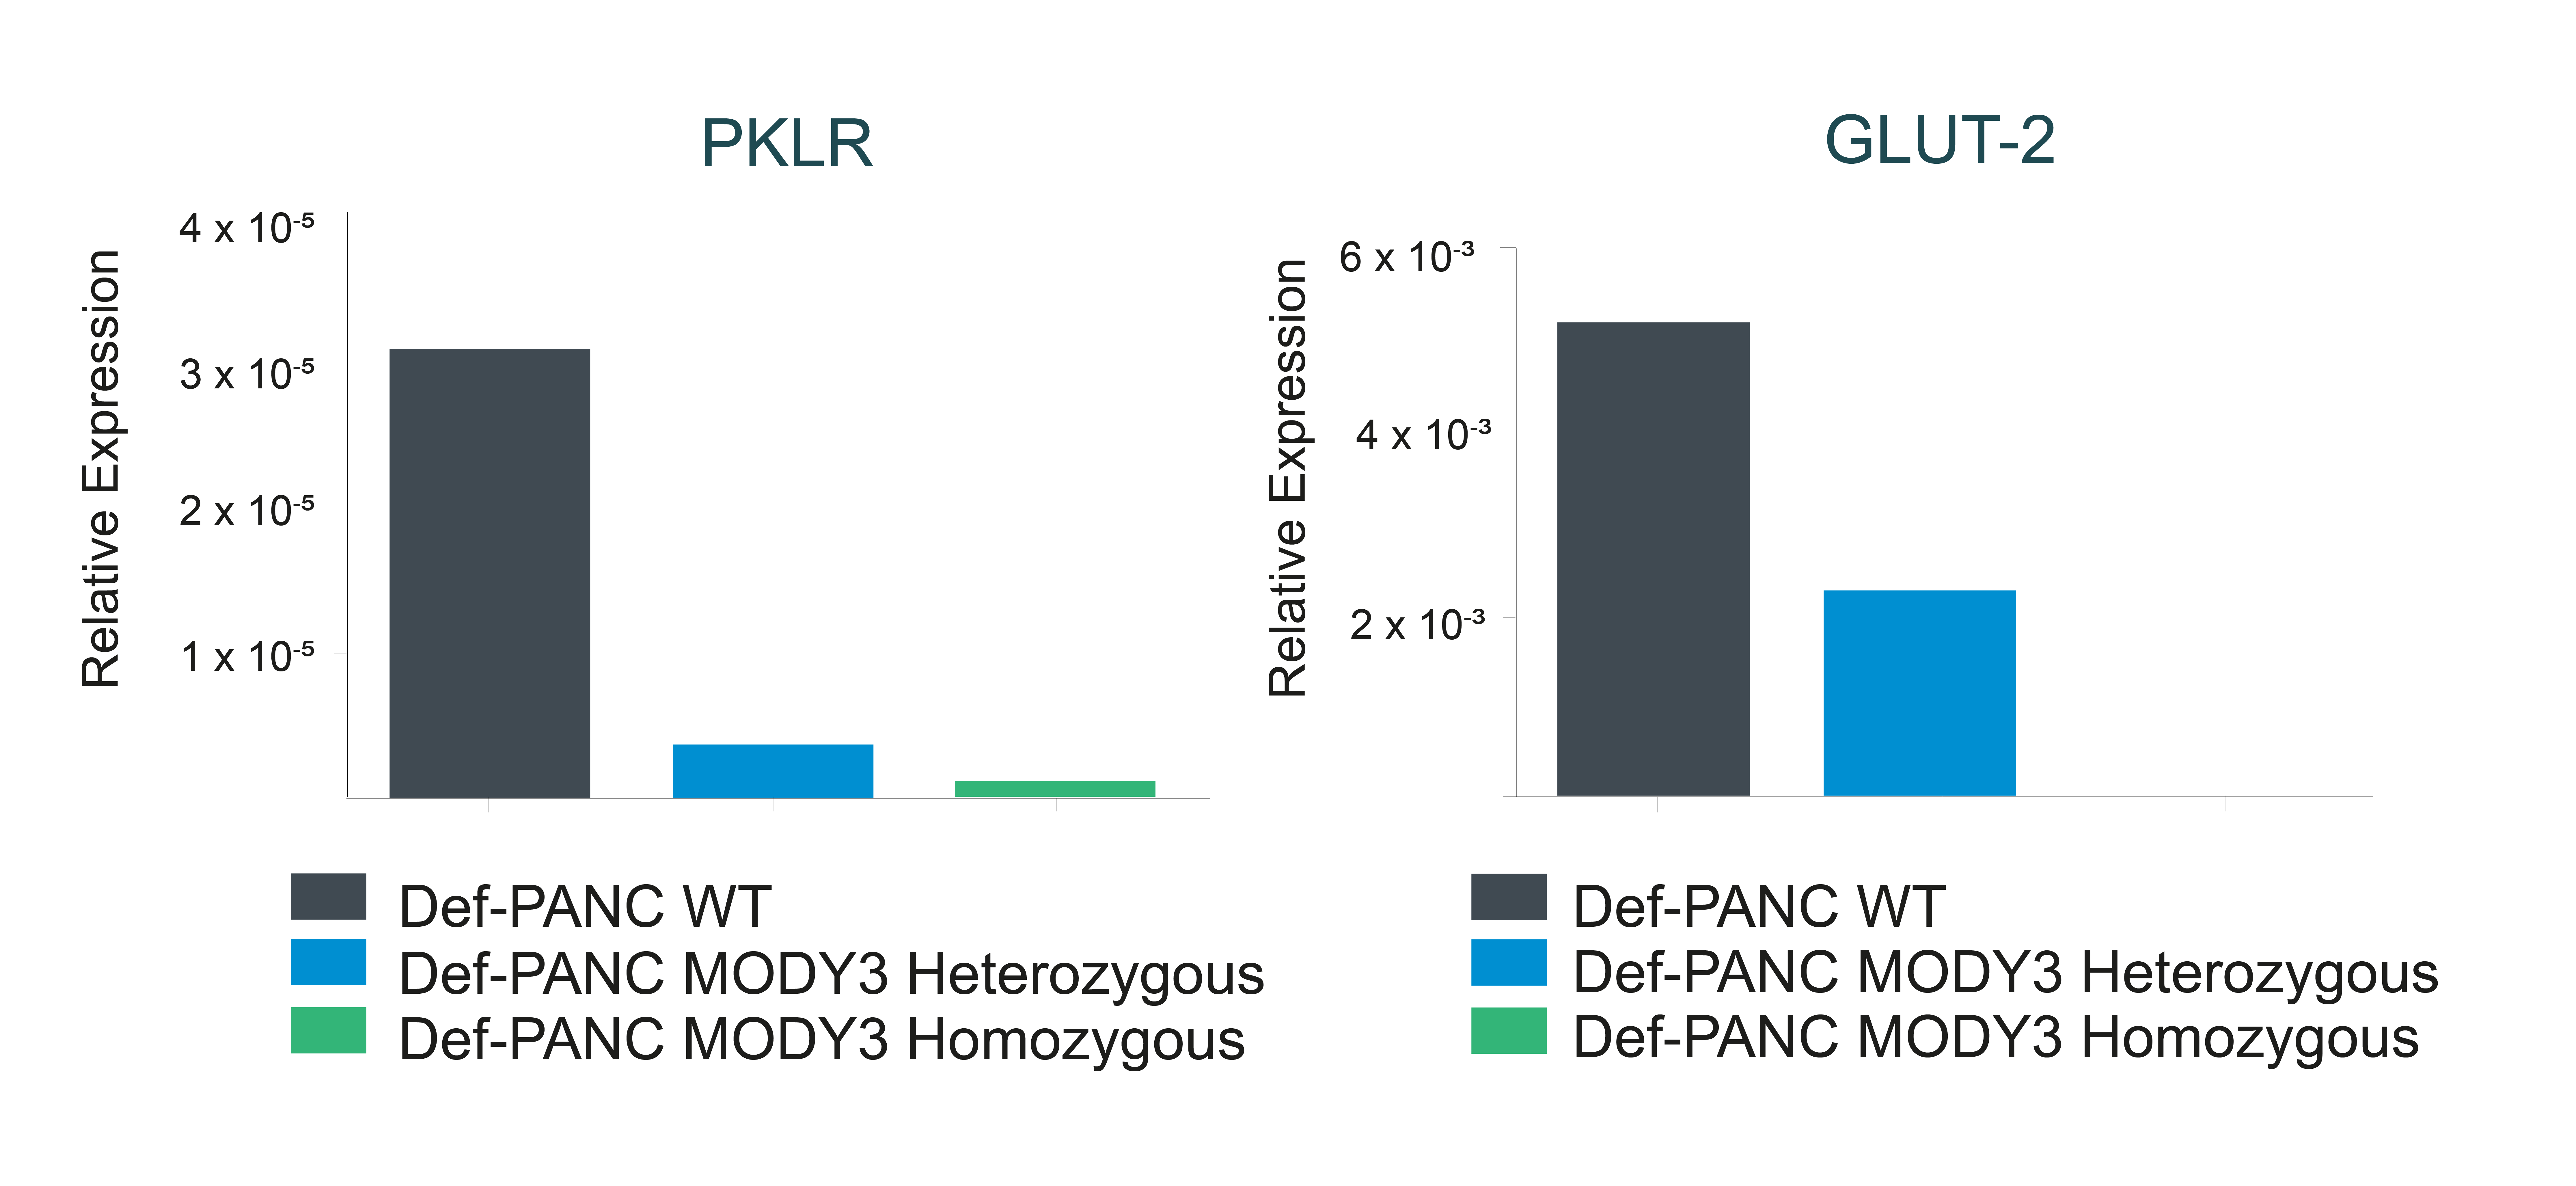 GLUT2 and PKLR expression analysis